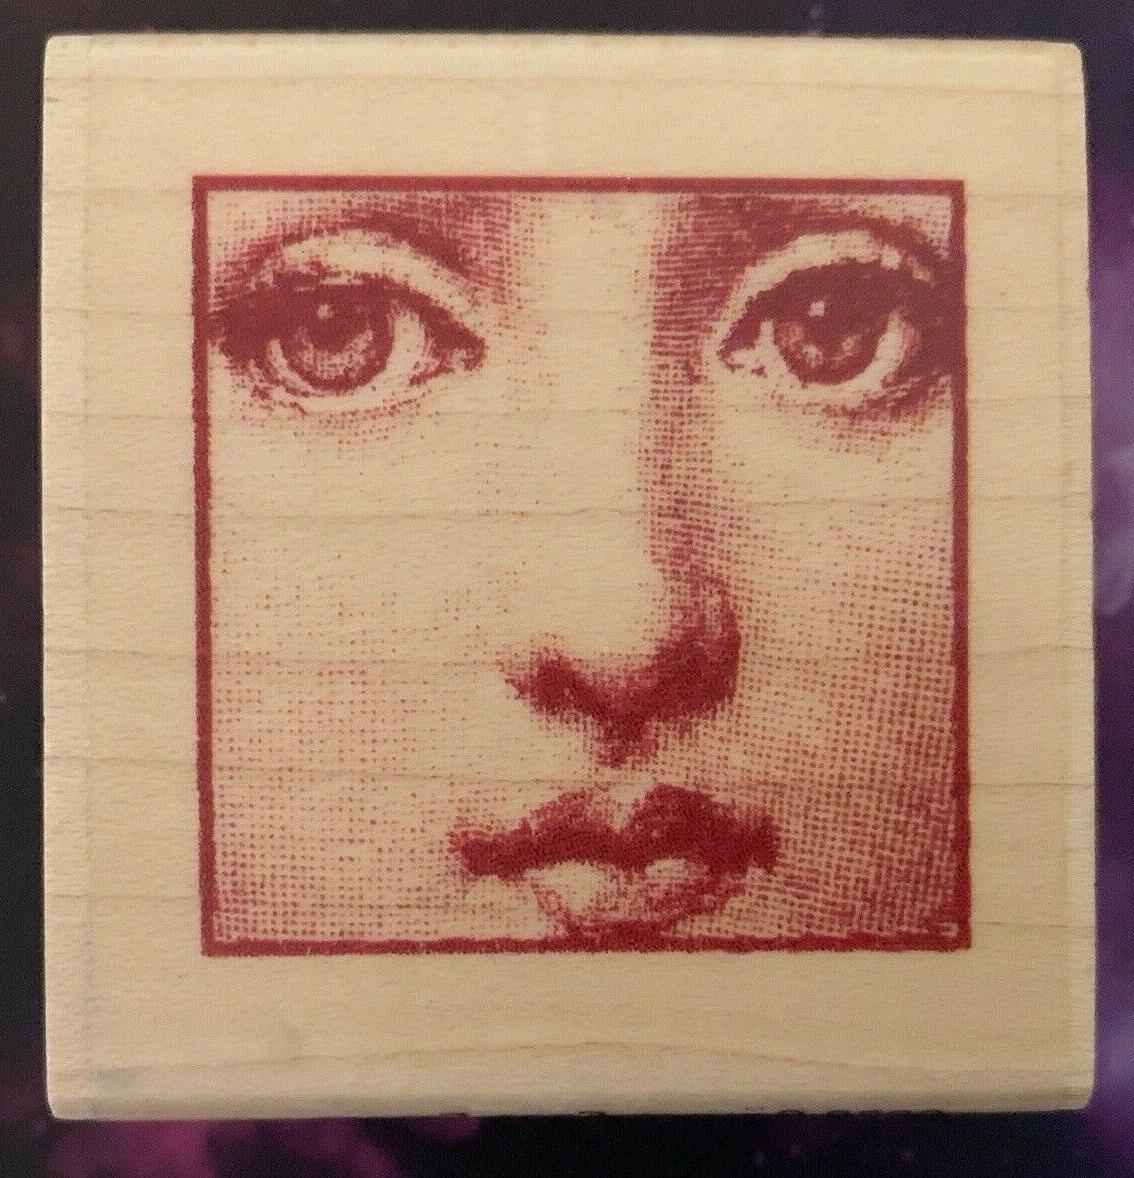 woman s face rubber stamp fornasetti soprano